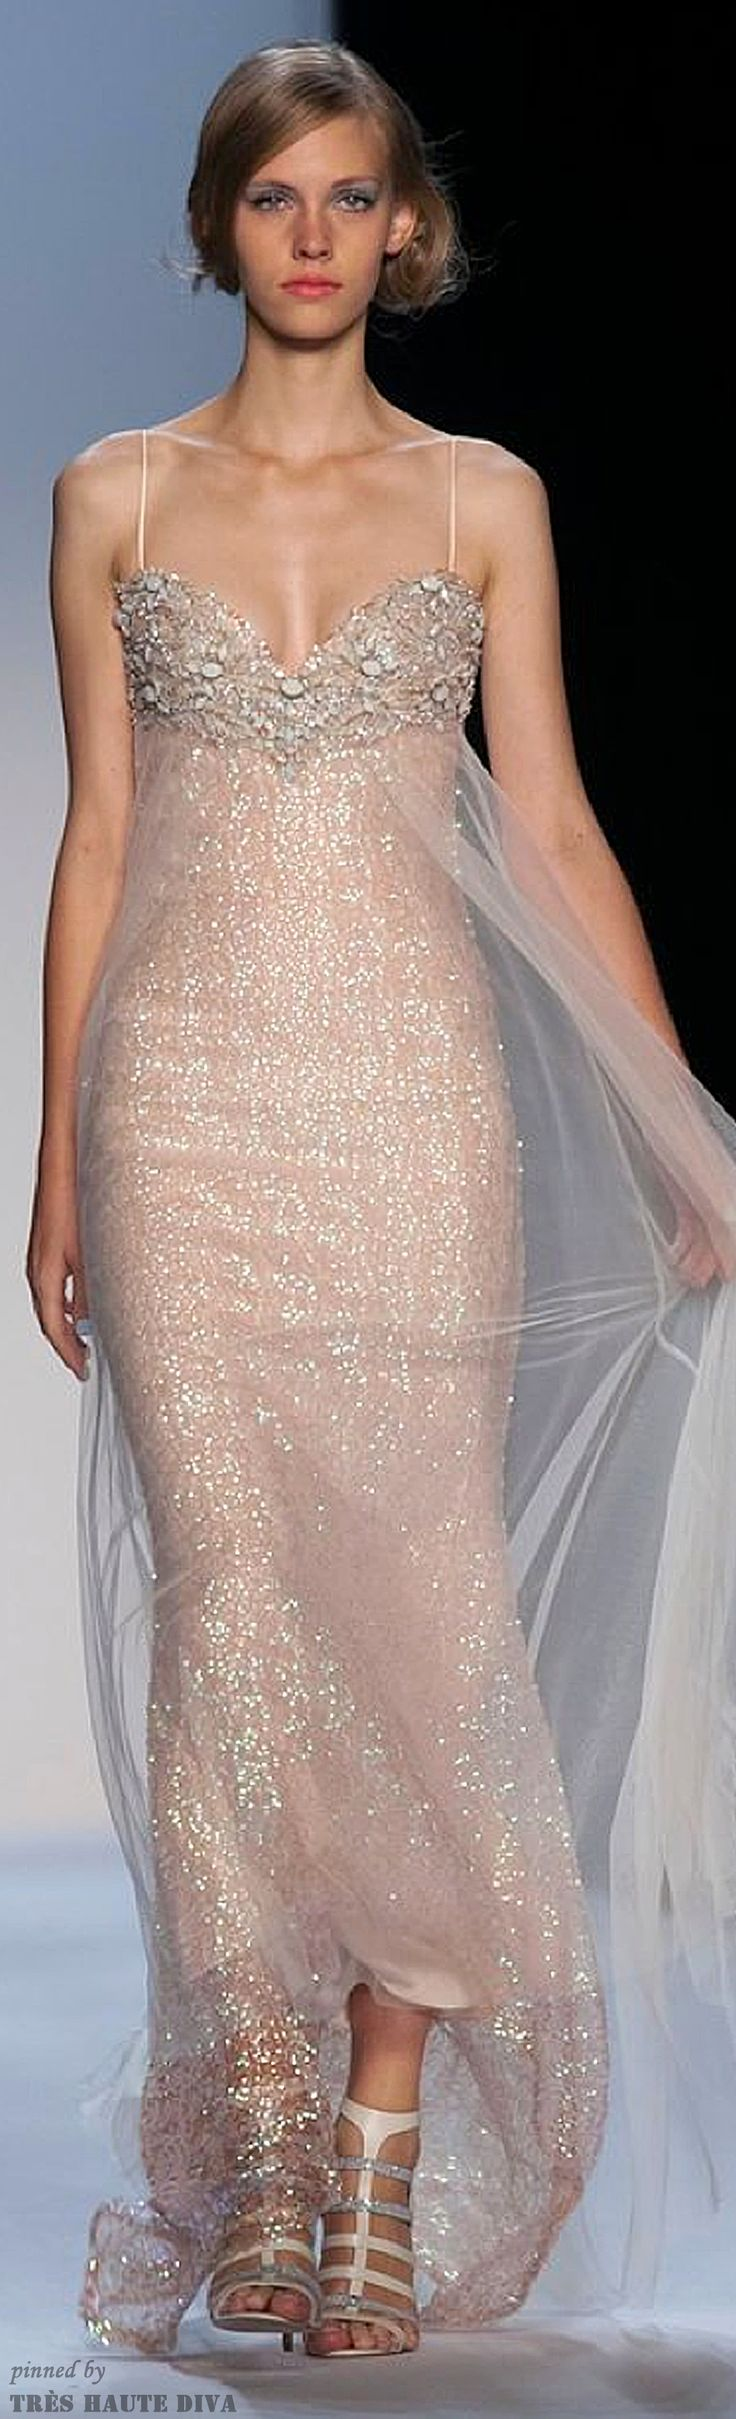 #NYFW Badgley Mischka Spring 2014 RTW www.nytimes.com/...